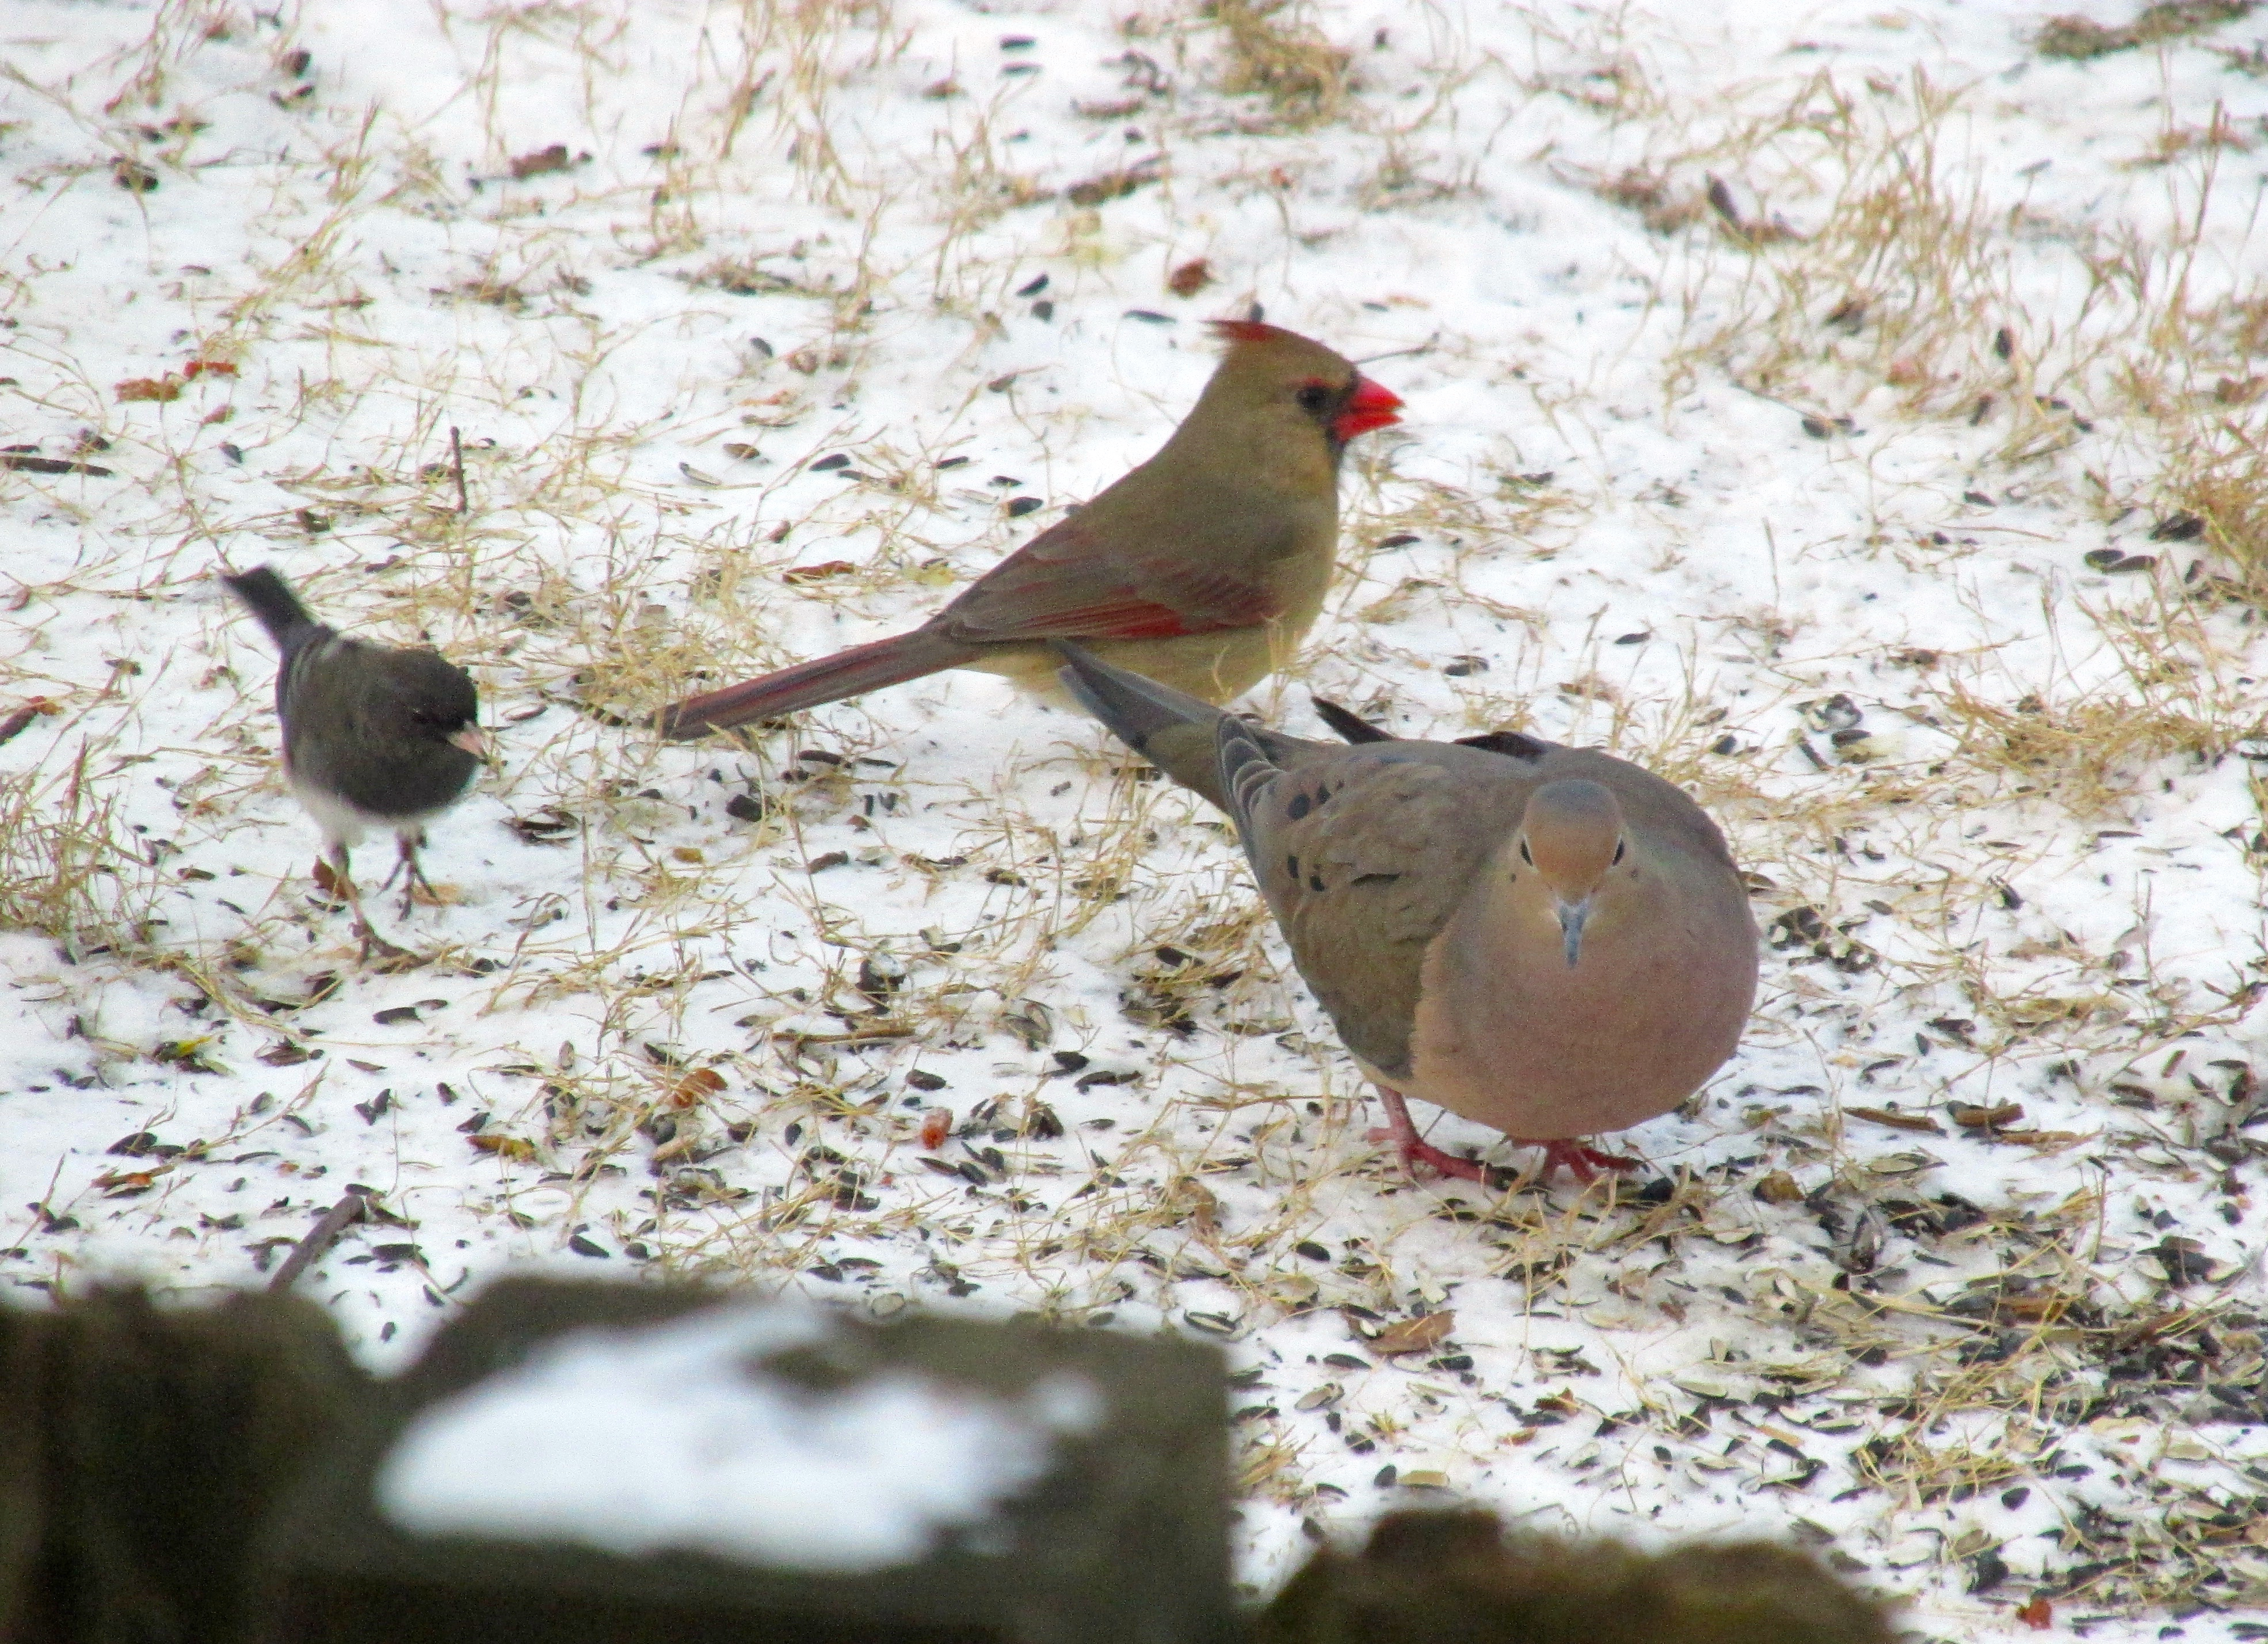 Cardinals Coexist With Other Ground Feeders Without Problem In Winter The Photos Above Both A Male And Female Cardinal Are Feeding